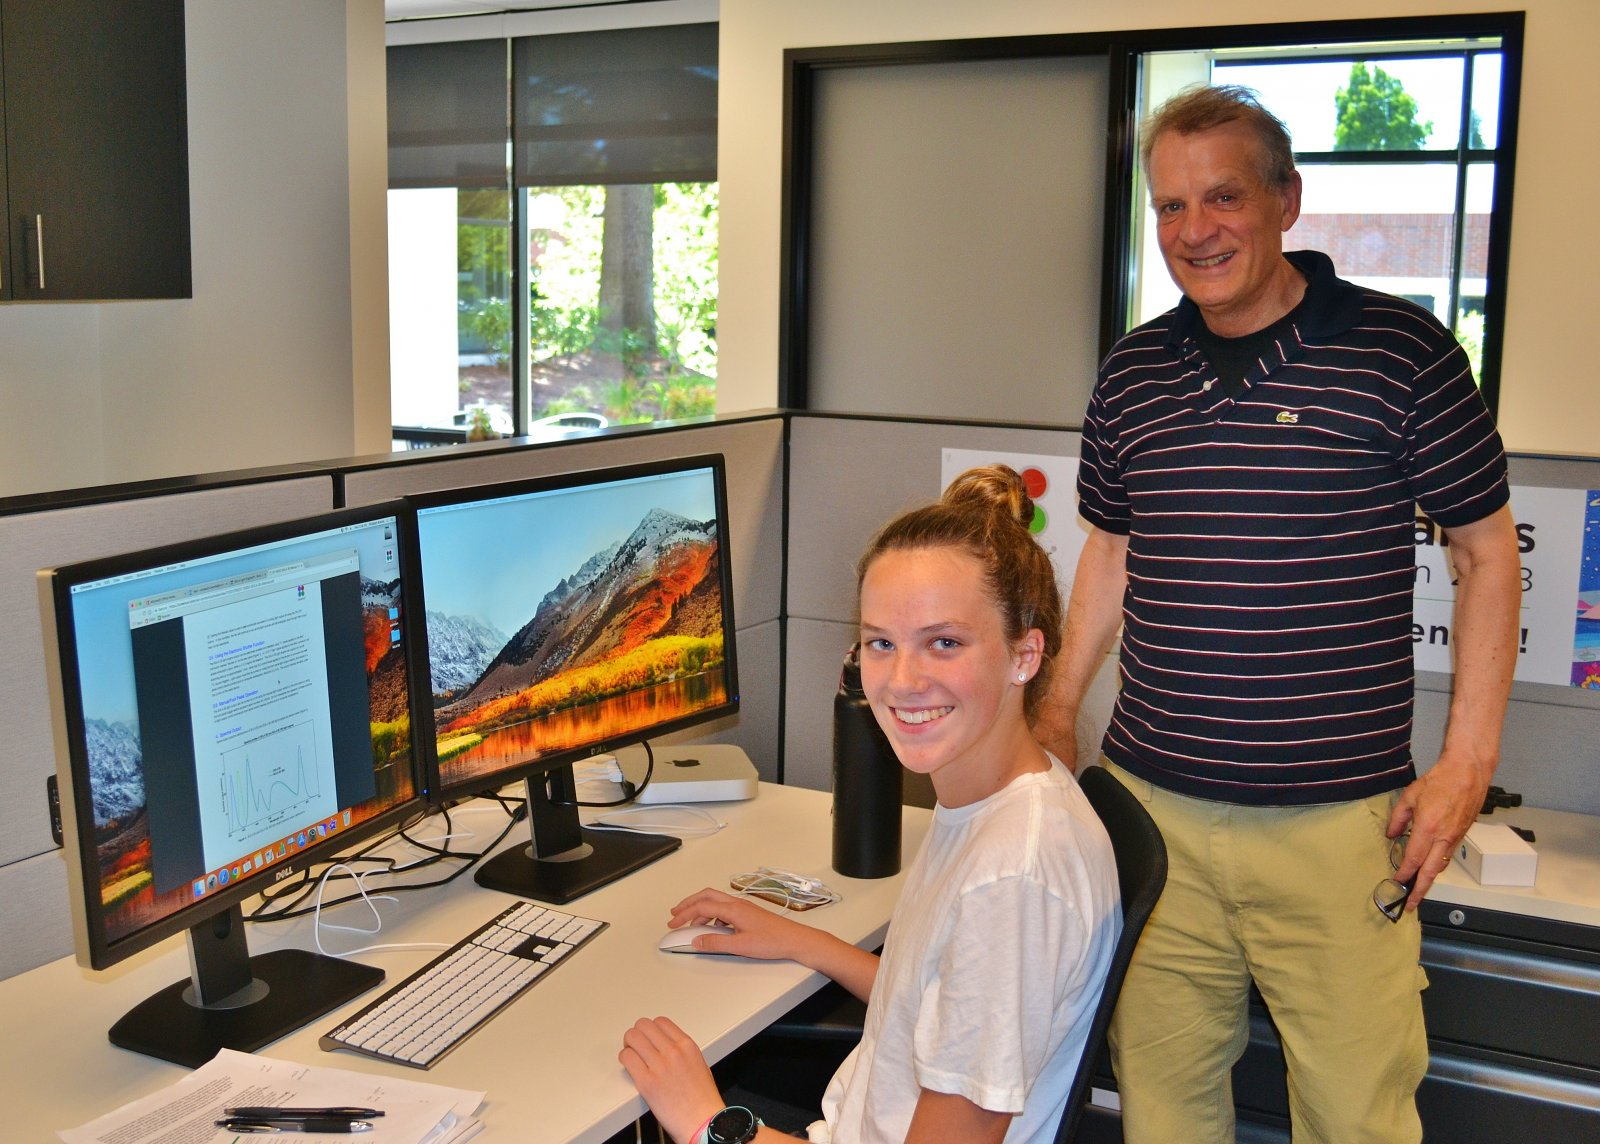 ASE Intern Elizabeth Brands with mentor Iain Johnson at Lumencor (2018)